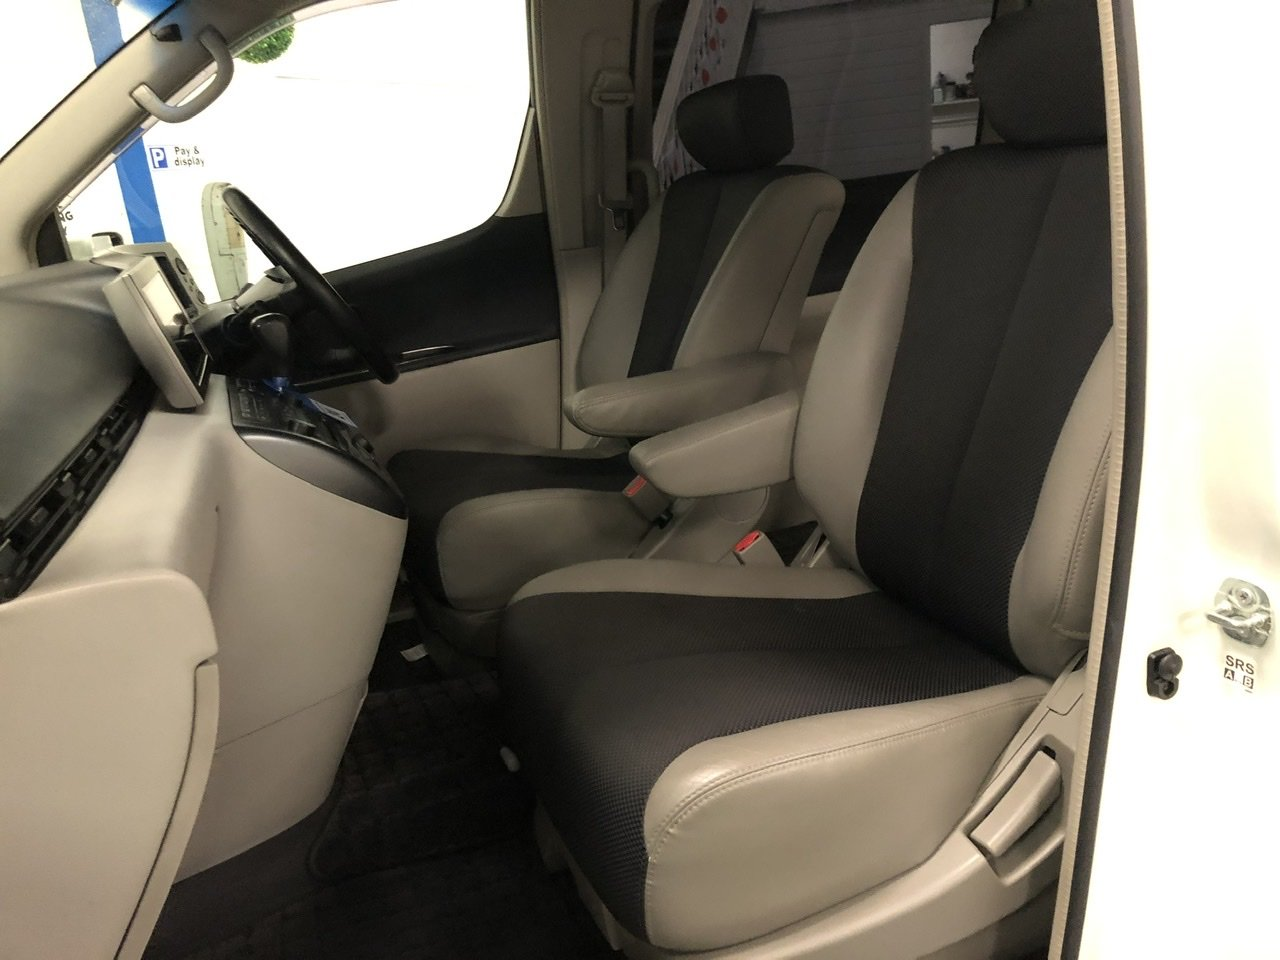 2004 NISSAN ELGRAND E51 3.5 V6 HIGHWAY STAR, White, 8 Seater MPV For Sale (picture 4 of 6)